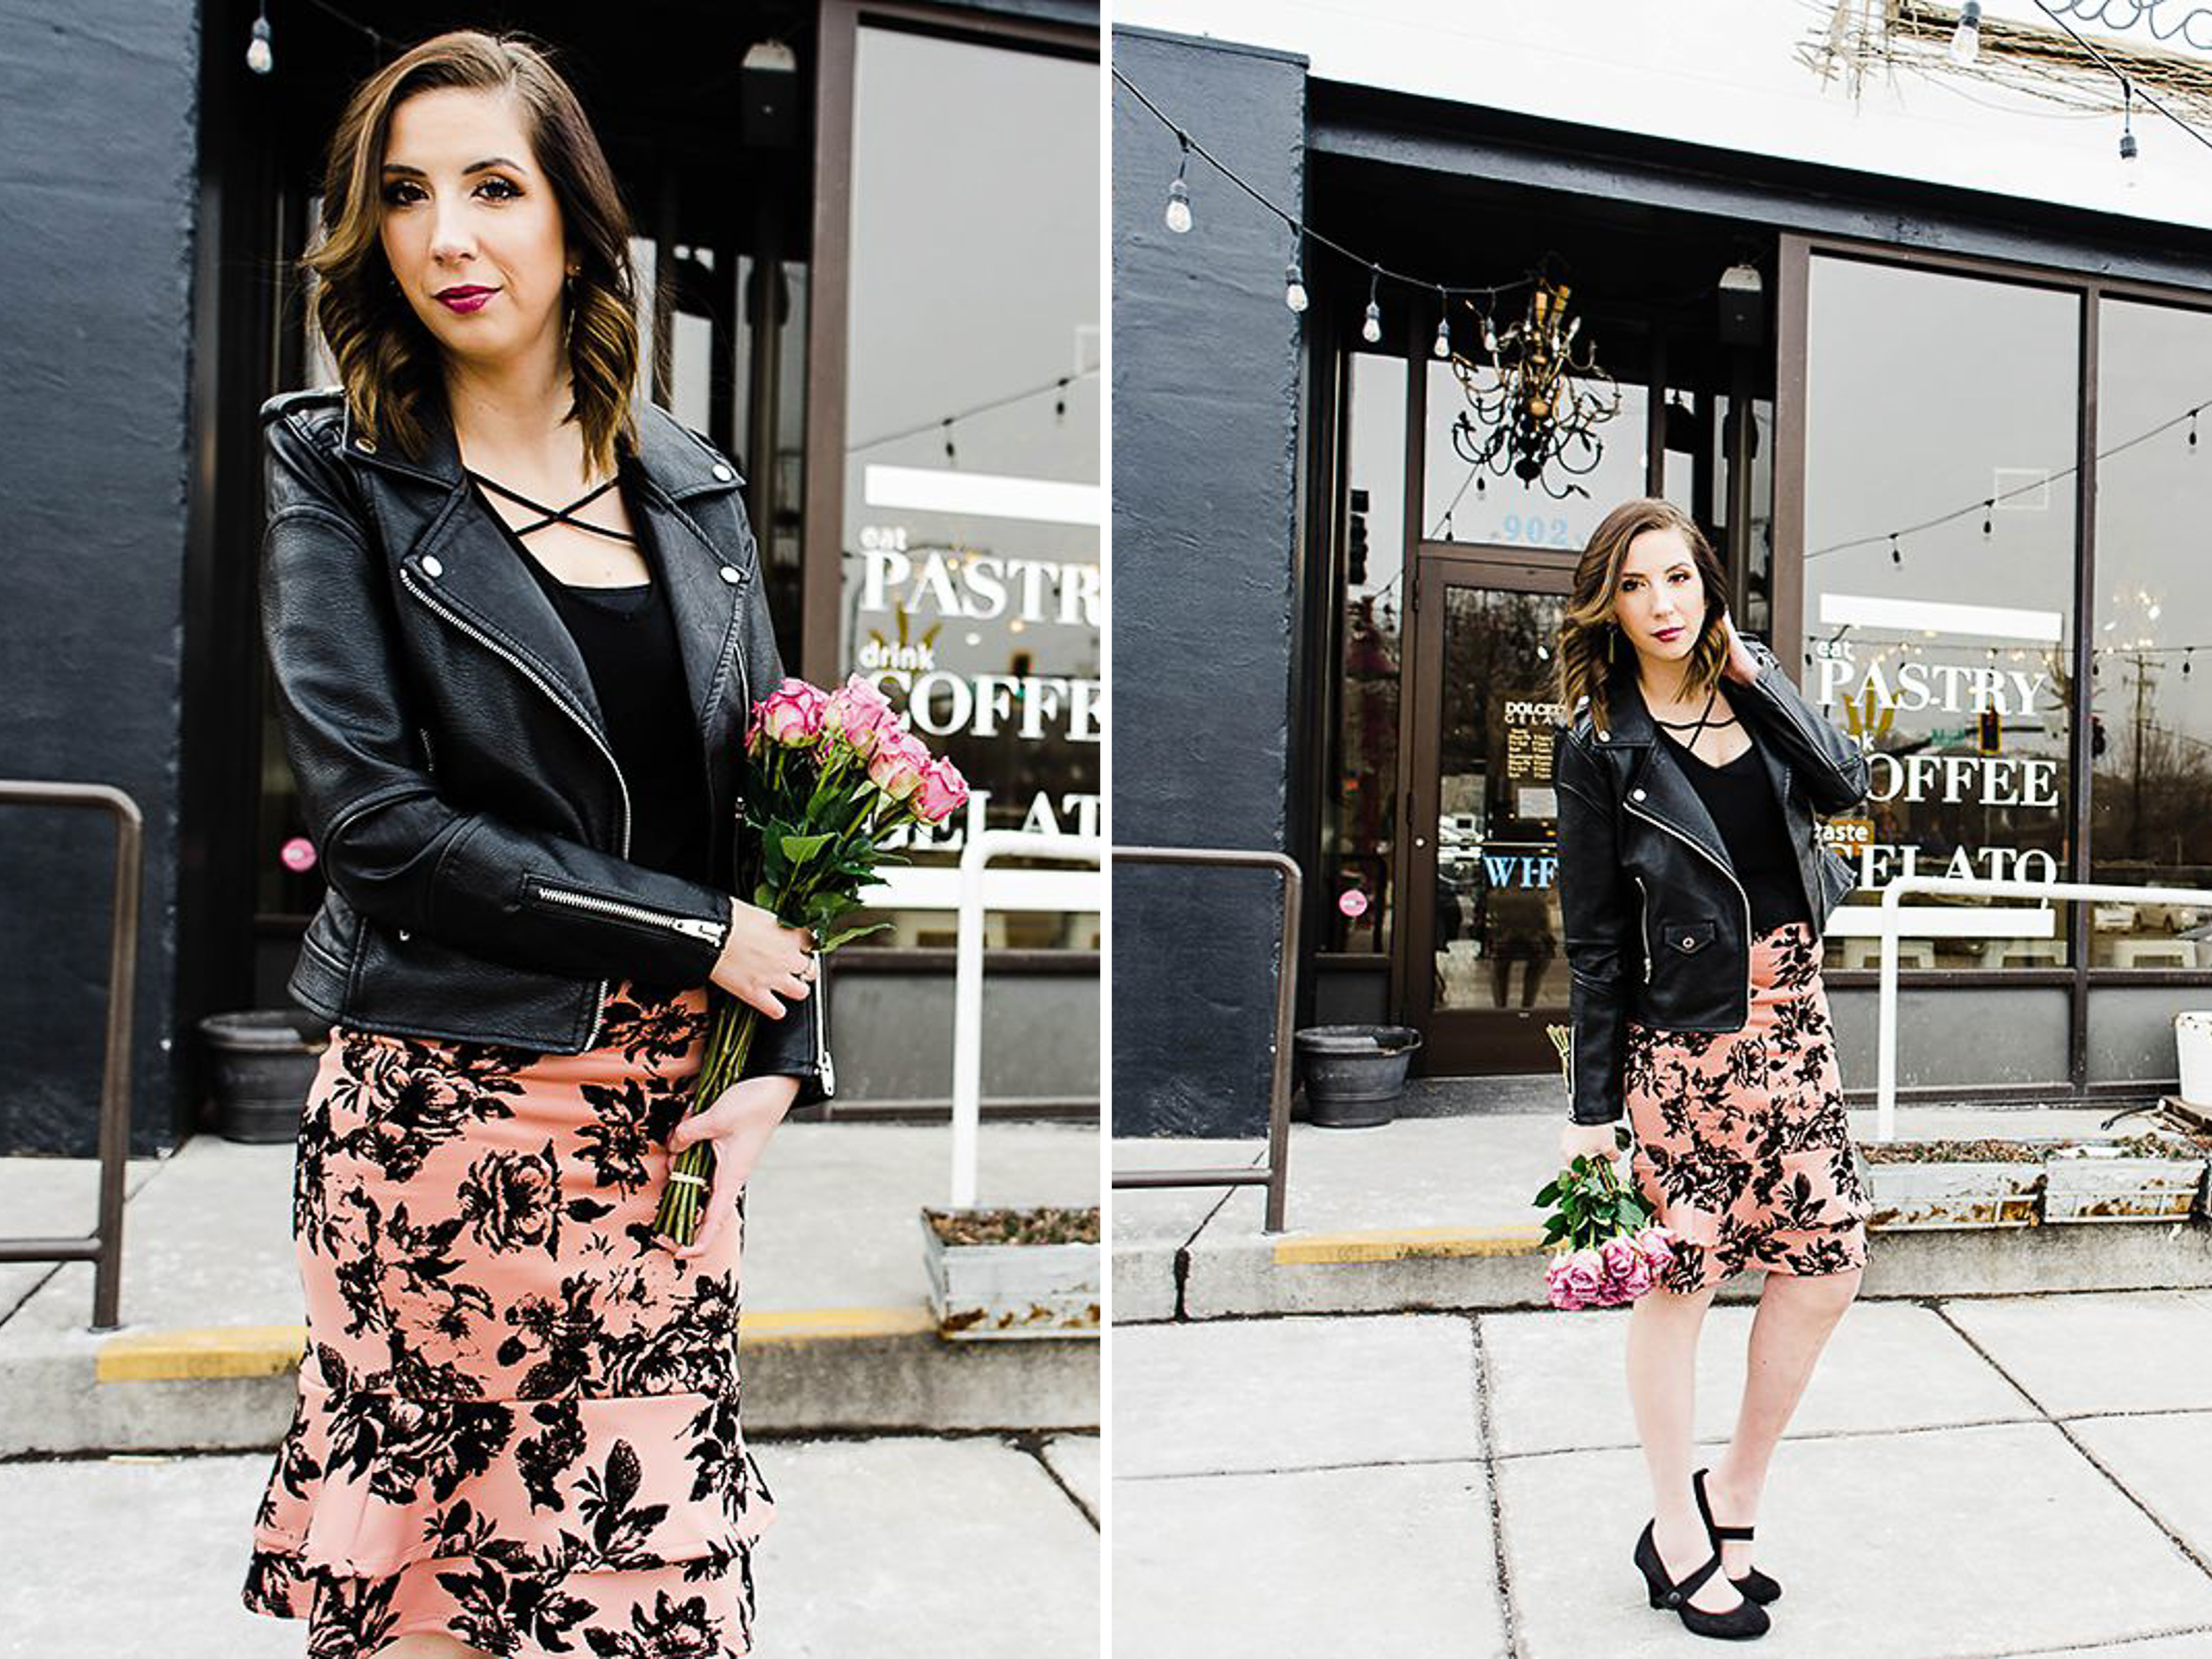 Edgy Valentine's Day Outfit Idea featuring a leather jacket and pencil skirt // Hey There, Chelsie